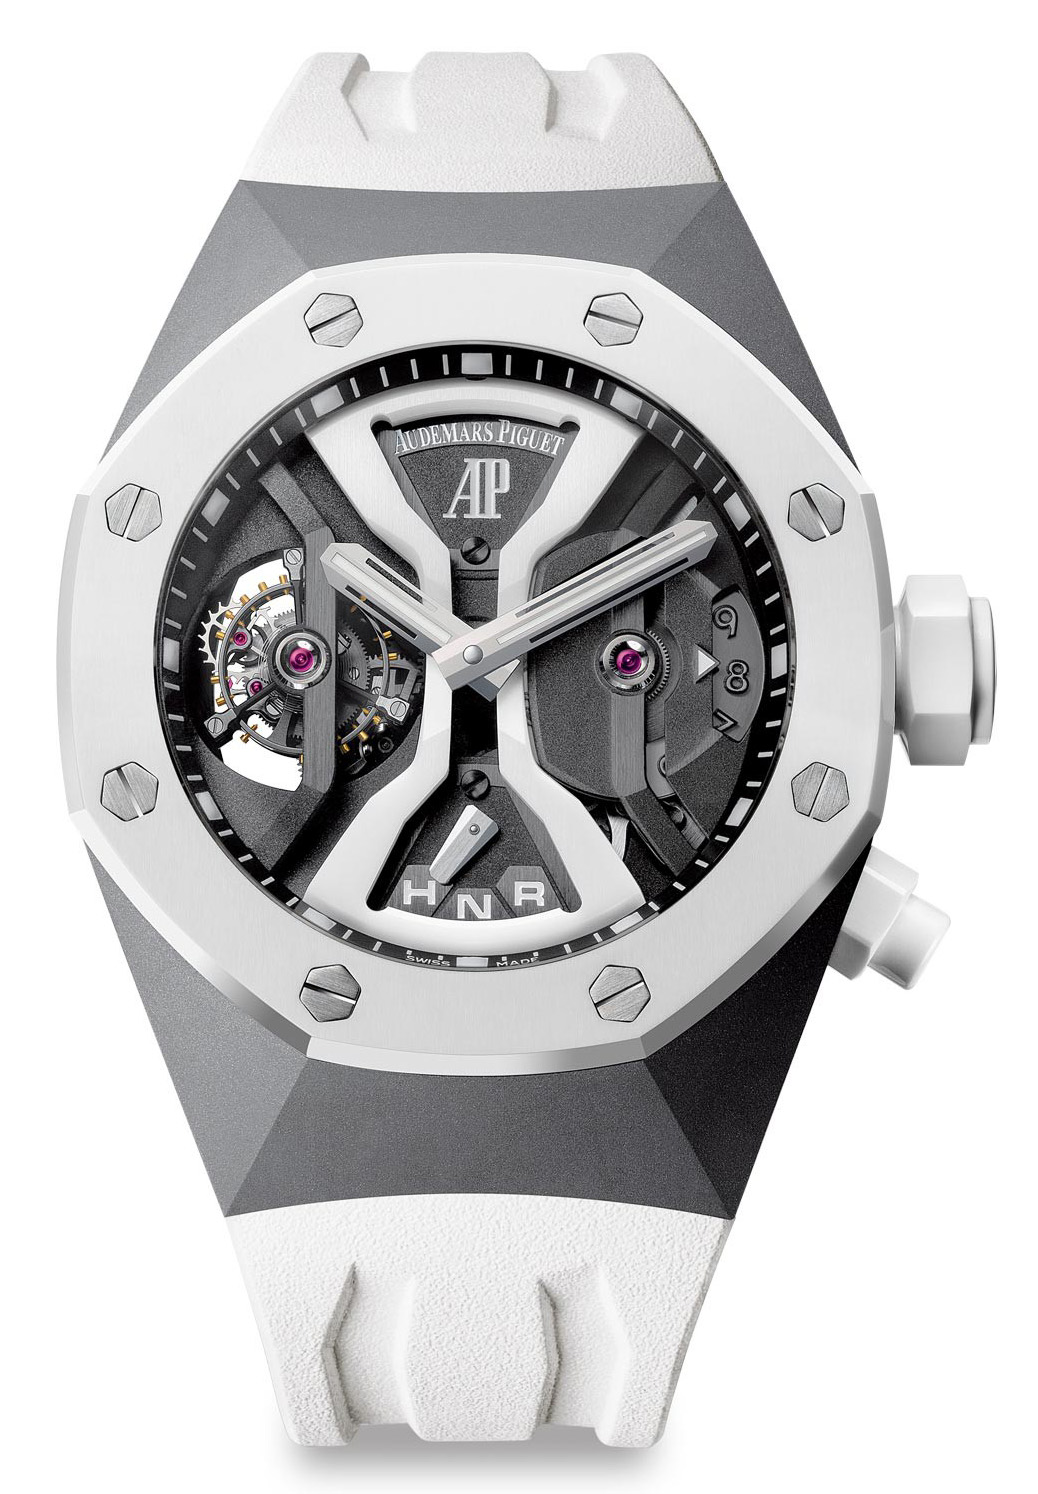 Audemars Piguet Royal Oak Concept GMT Tourbillon (2014)